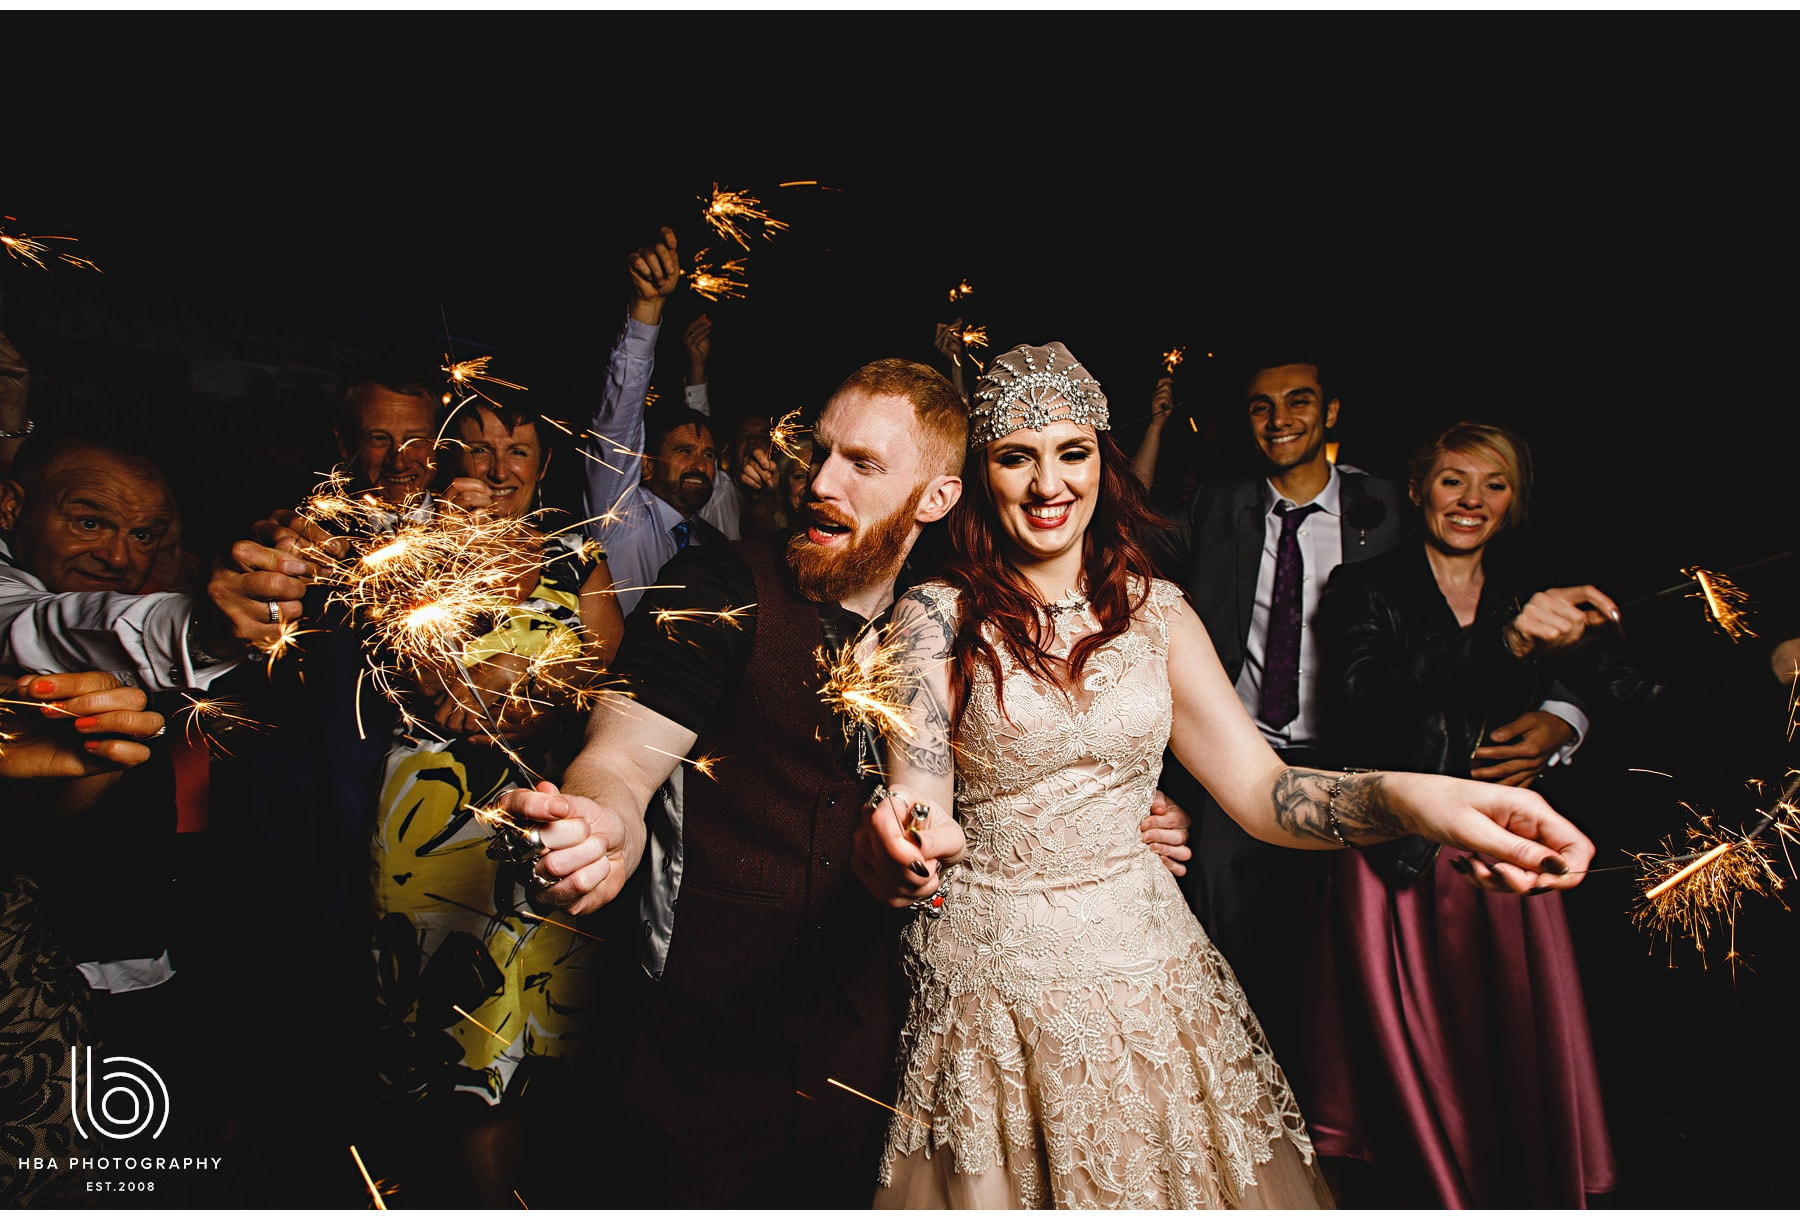 the bride & groom with sparklers